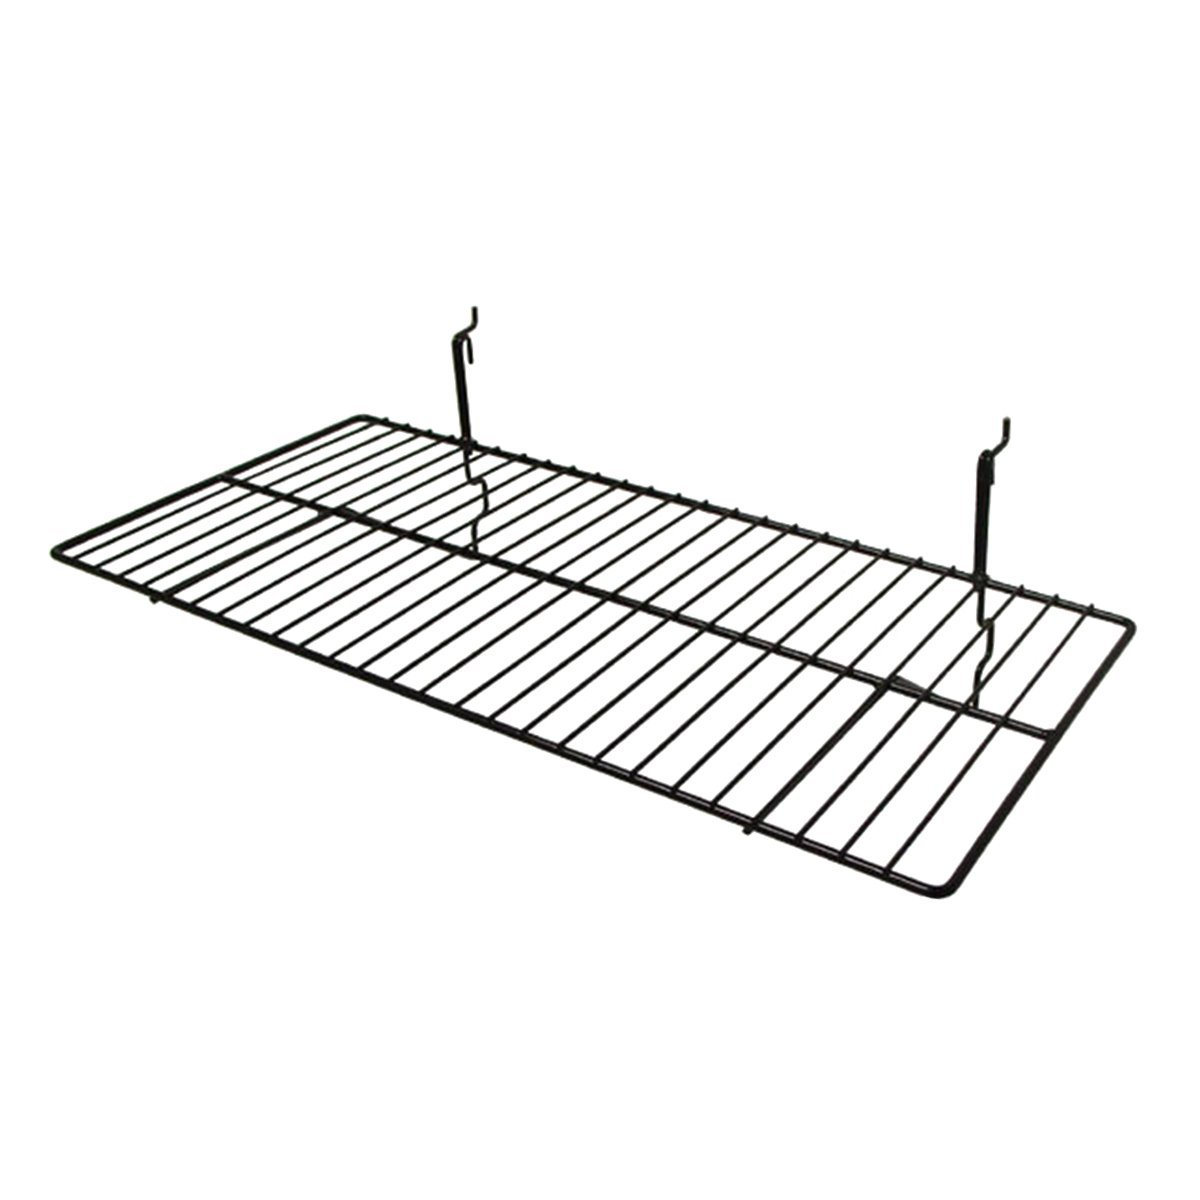 Black AMKOA BSK2412//BLK Wire Shelf and Cap Displayers for Gridwall and Slatwall Pack of 6